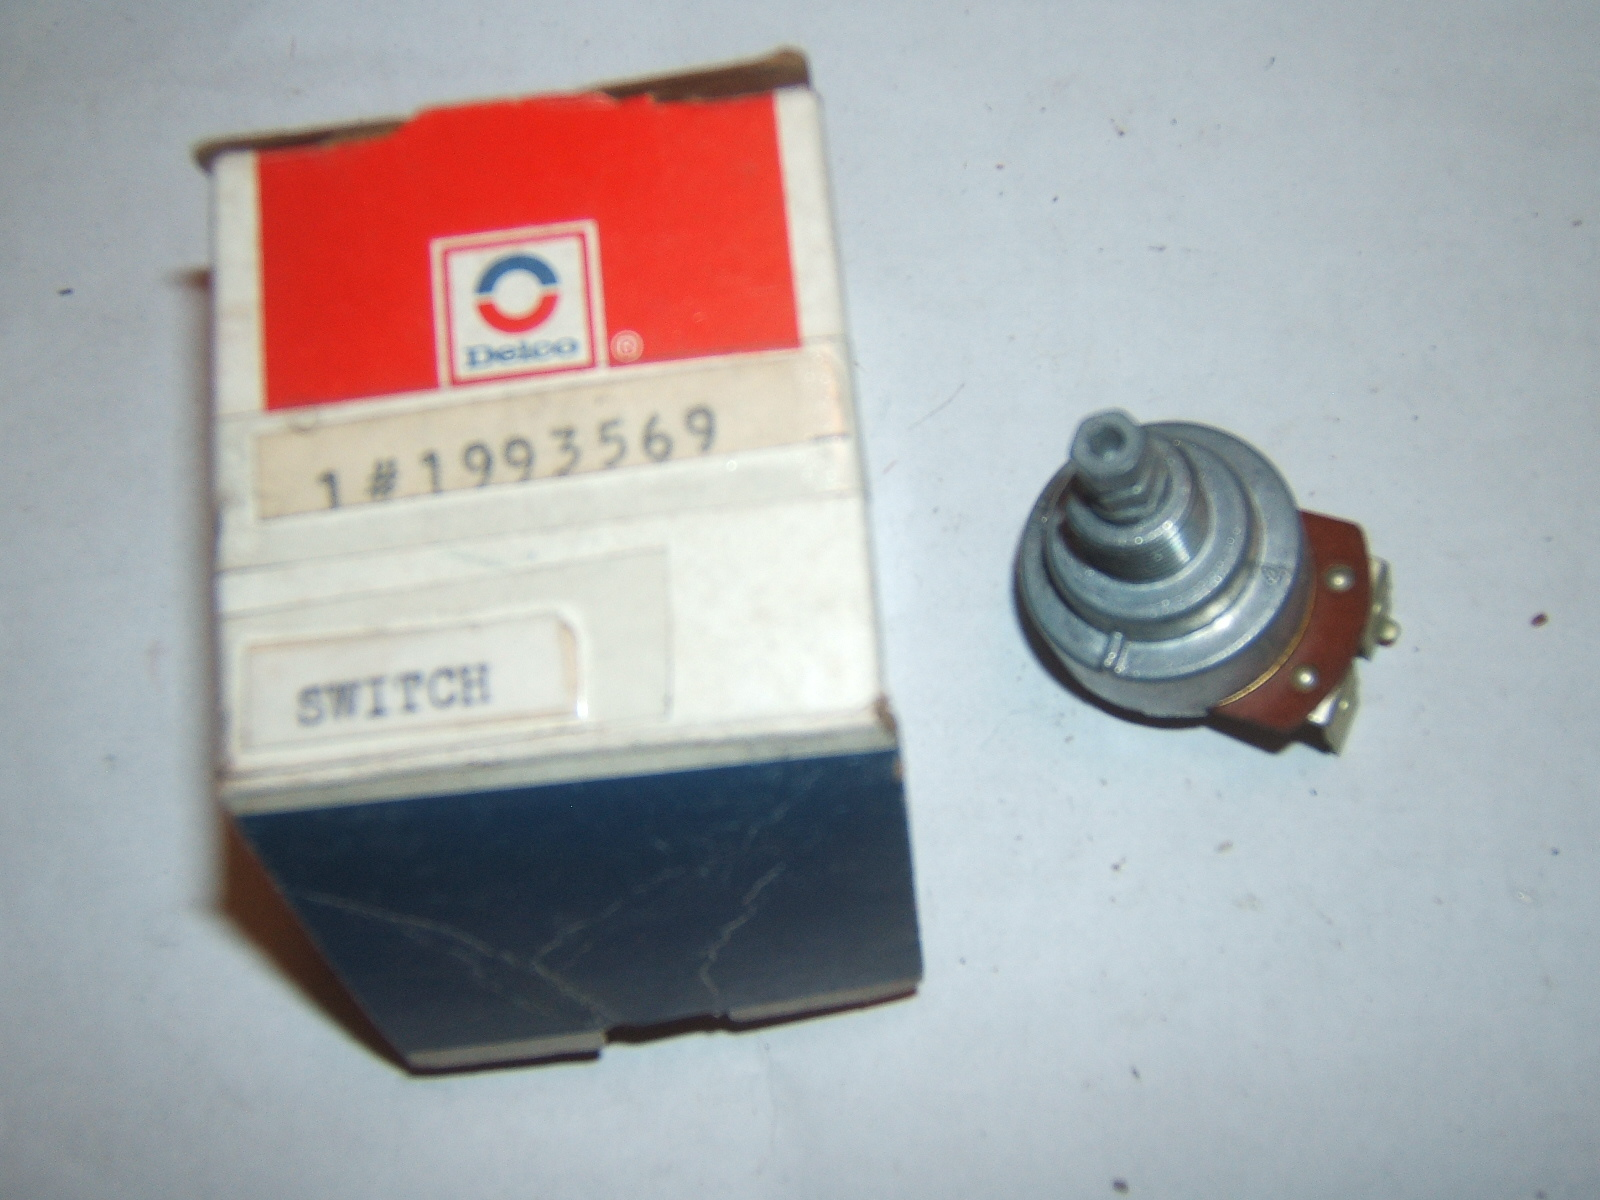 1962 -64 Oldsmobile windshield wiper switch nos 19935697 (a 1993569)